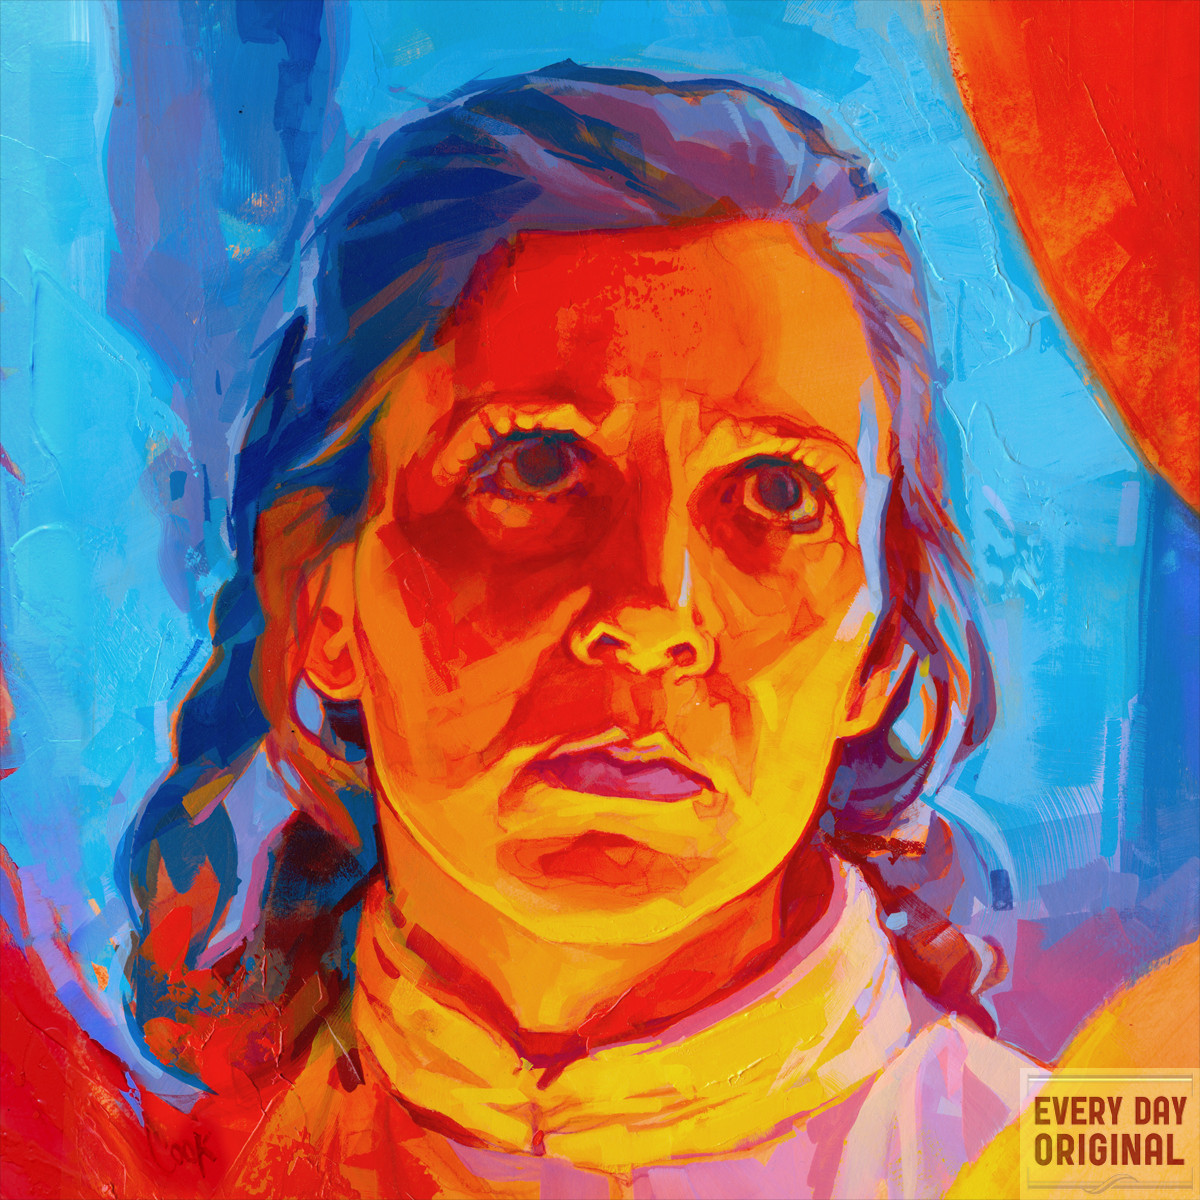 Portrait of Princess Leia by Bud Cook